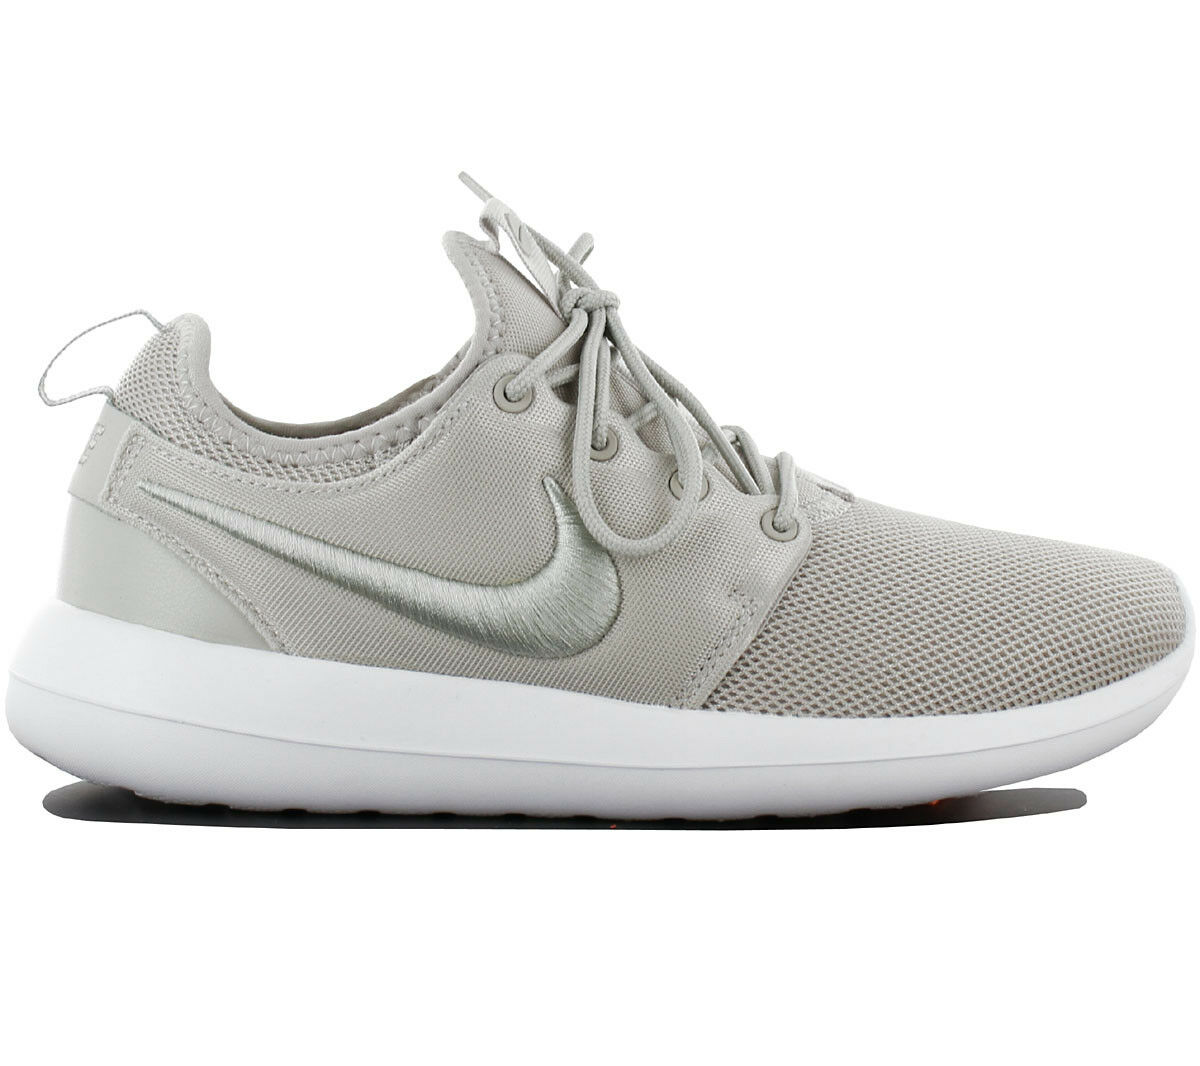 Nike Roshe Two Br Breeze Ladies Sneaker shoes Grey 896445-002 One Gym shoes New